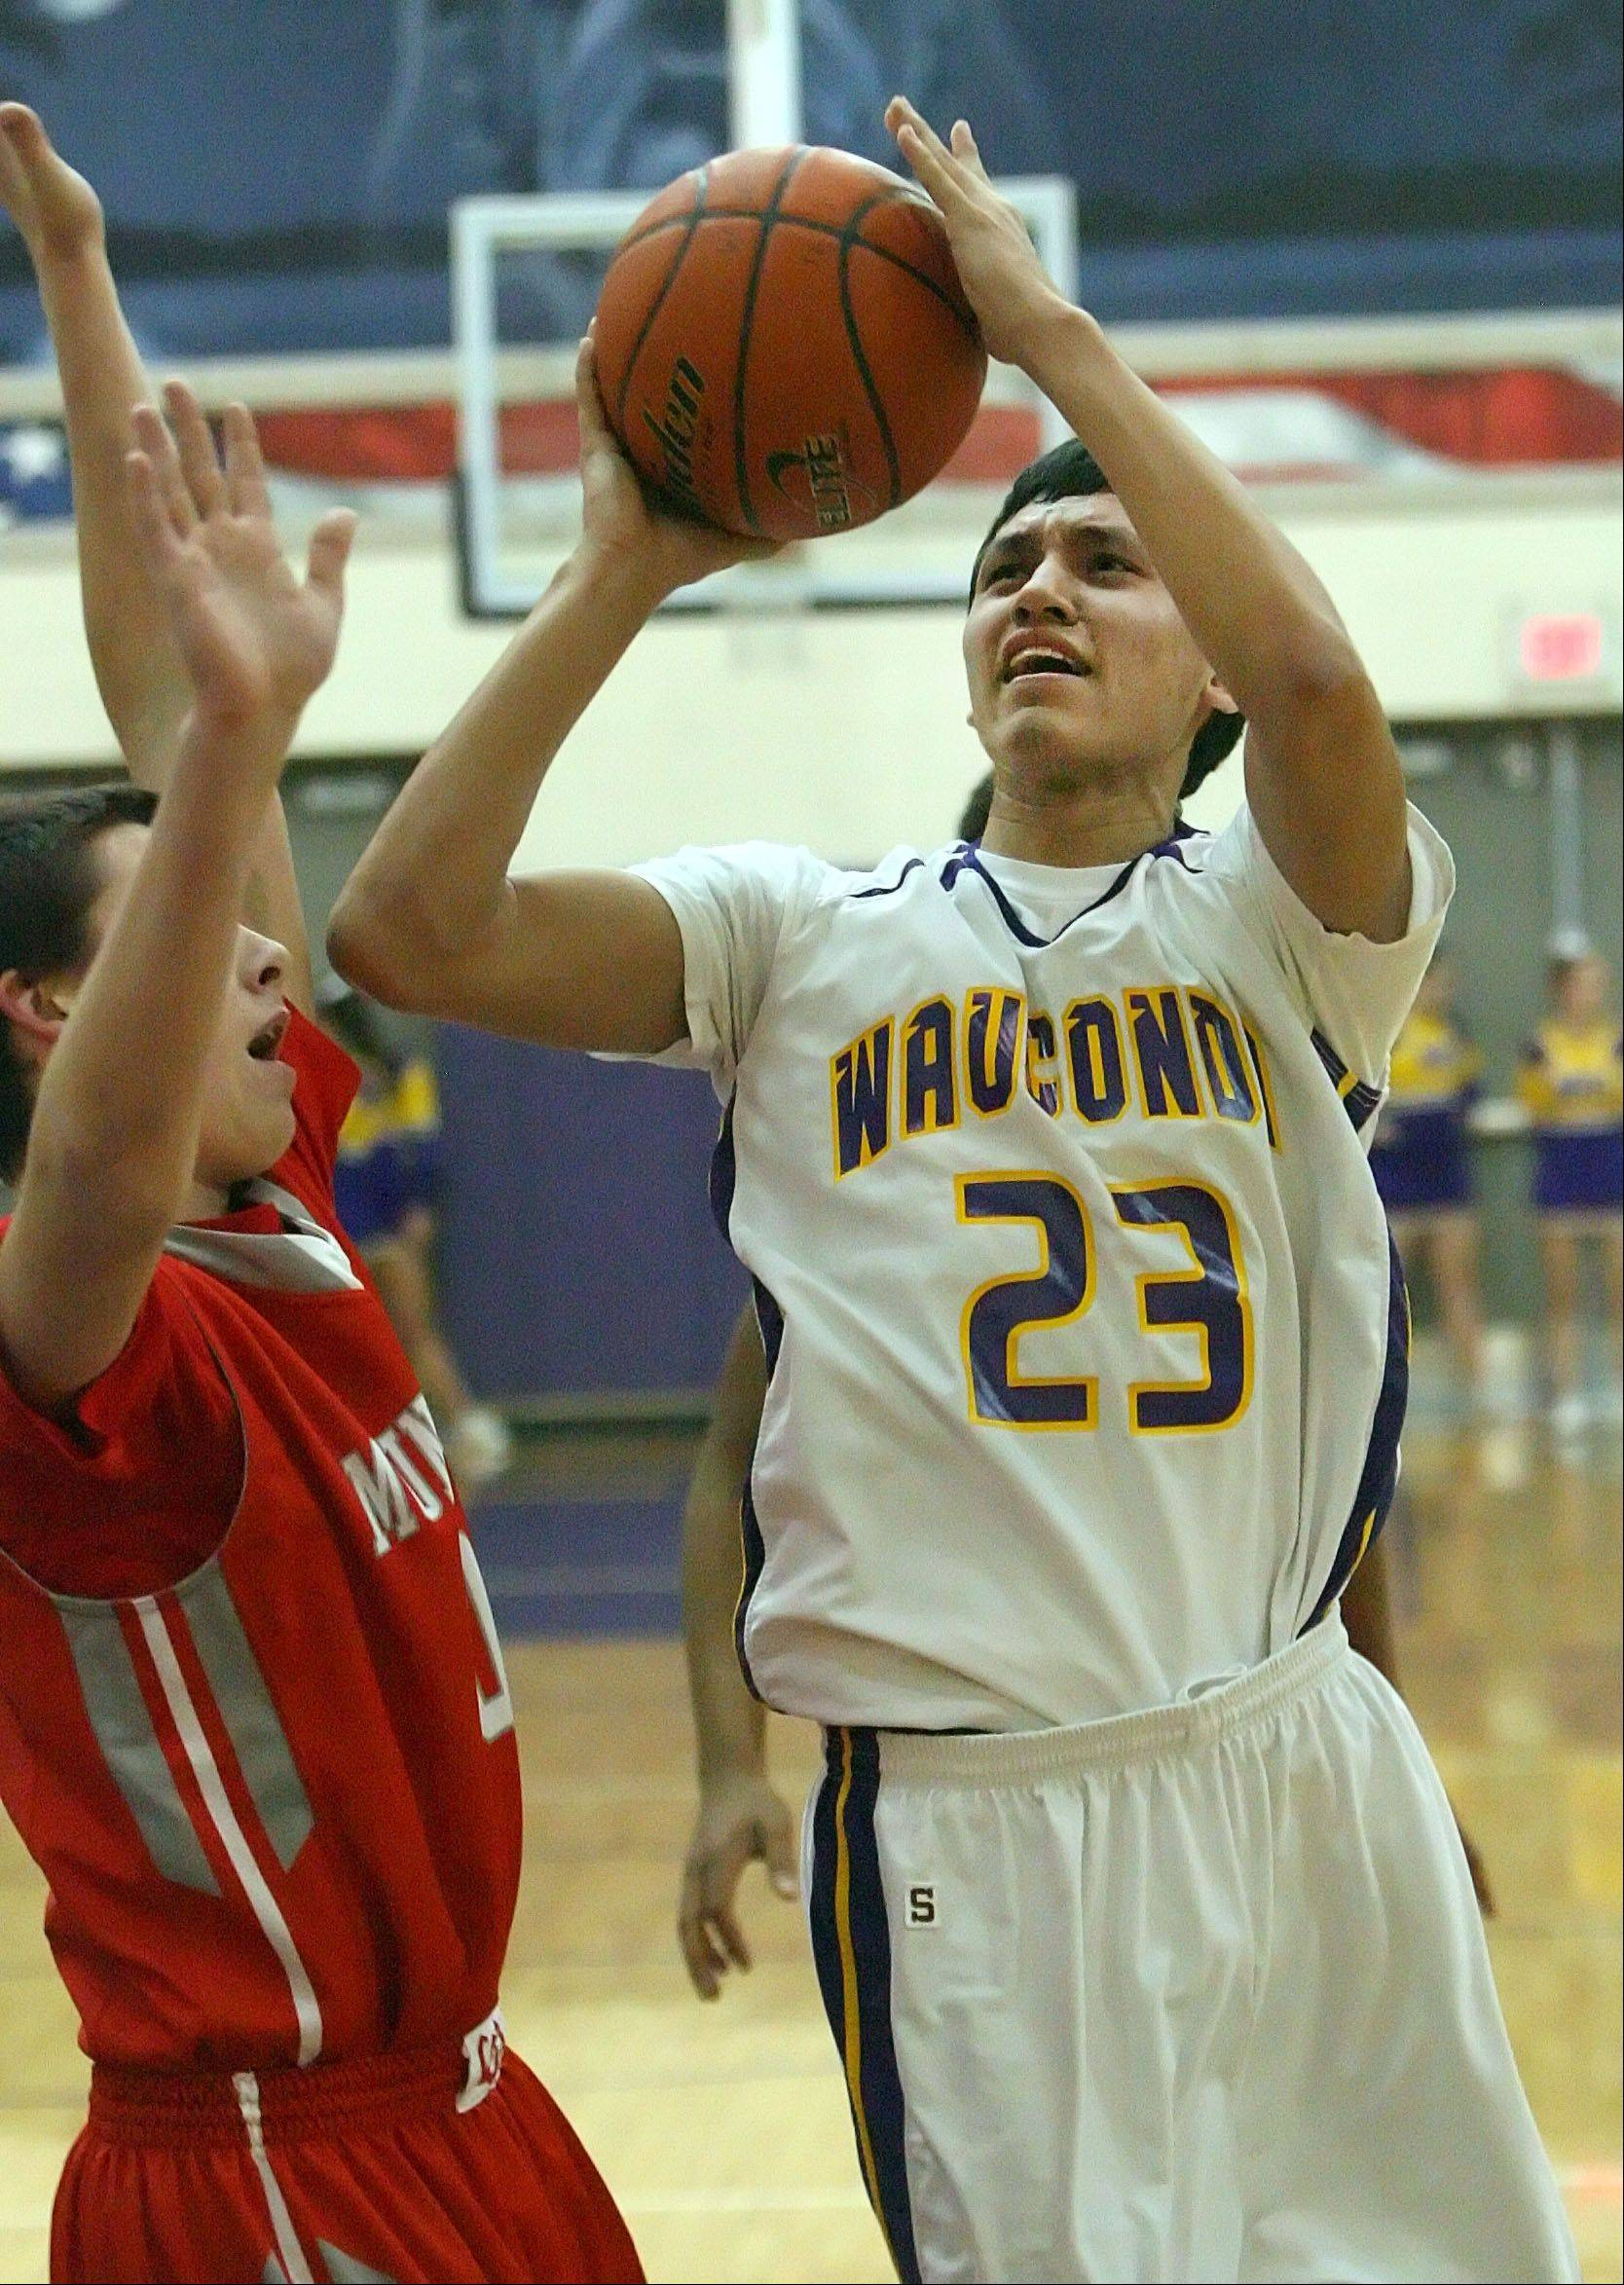 Wauconda's Kodey Thomas, right, drives on Mundelein's Derek Parola on Wednesday night at Wauconda.